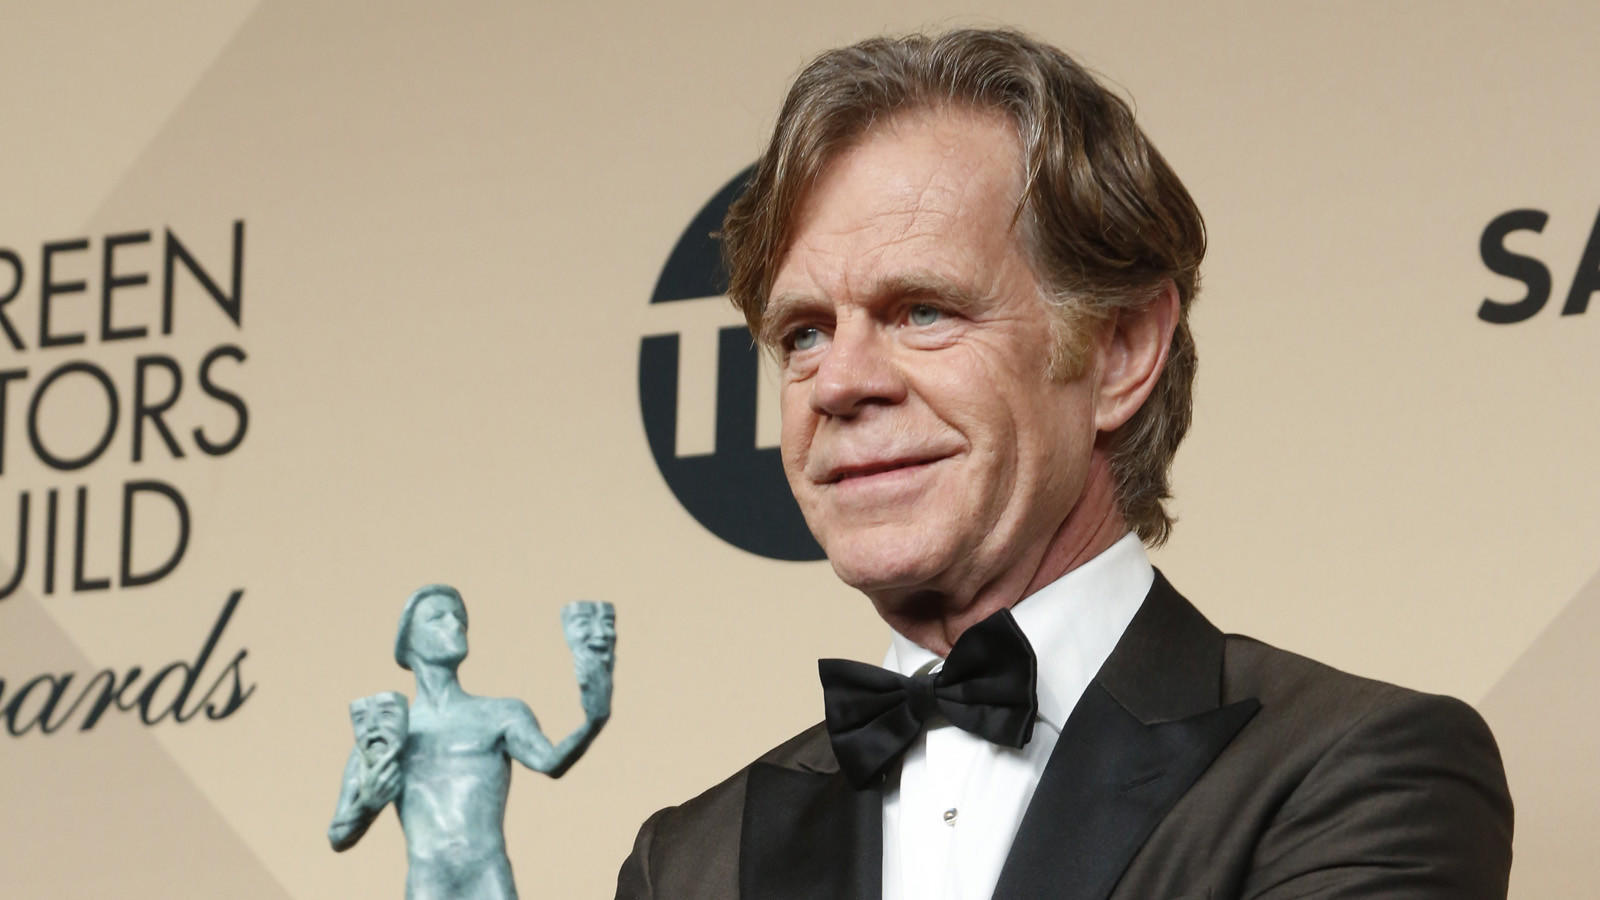 When will 'Shameless' end? Star William H. Macy weighs in